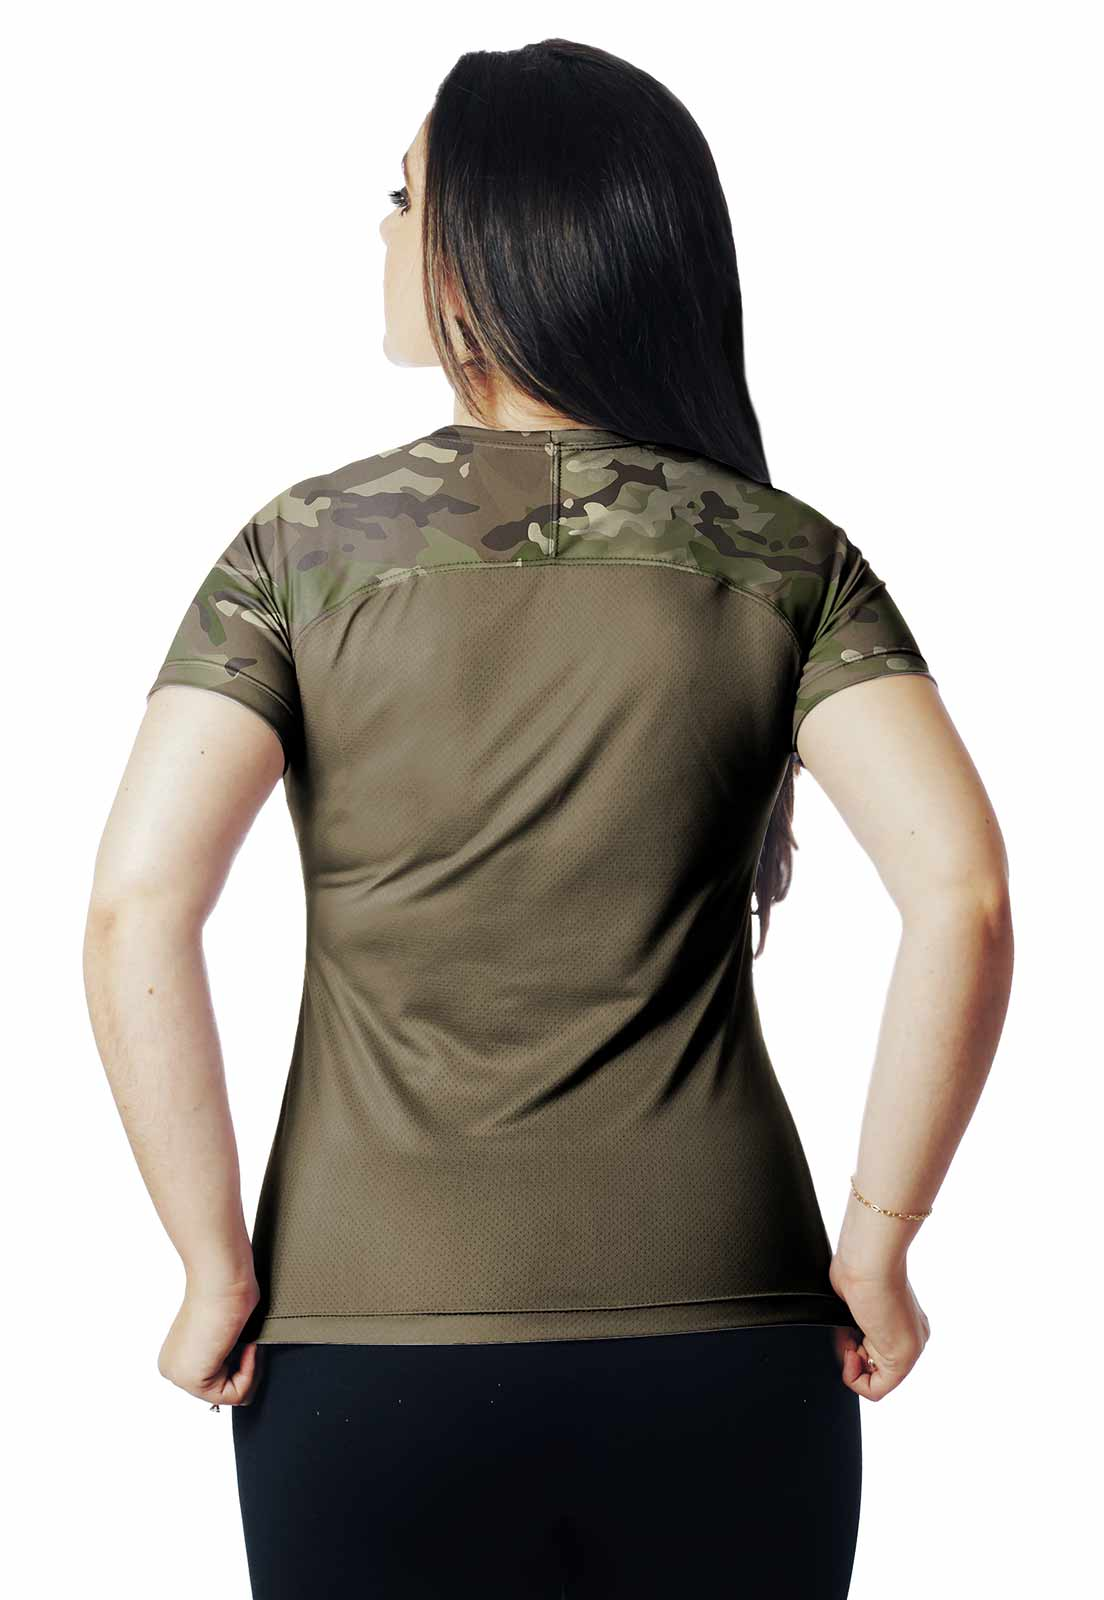 CAMISA DE PESCA DIA PROTEÇÃO UV MULTICAM 01 REAL HUNTER FEMININA  - REAL HUNTER OUTDOORS